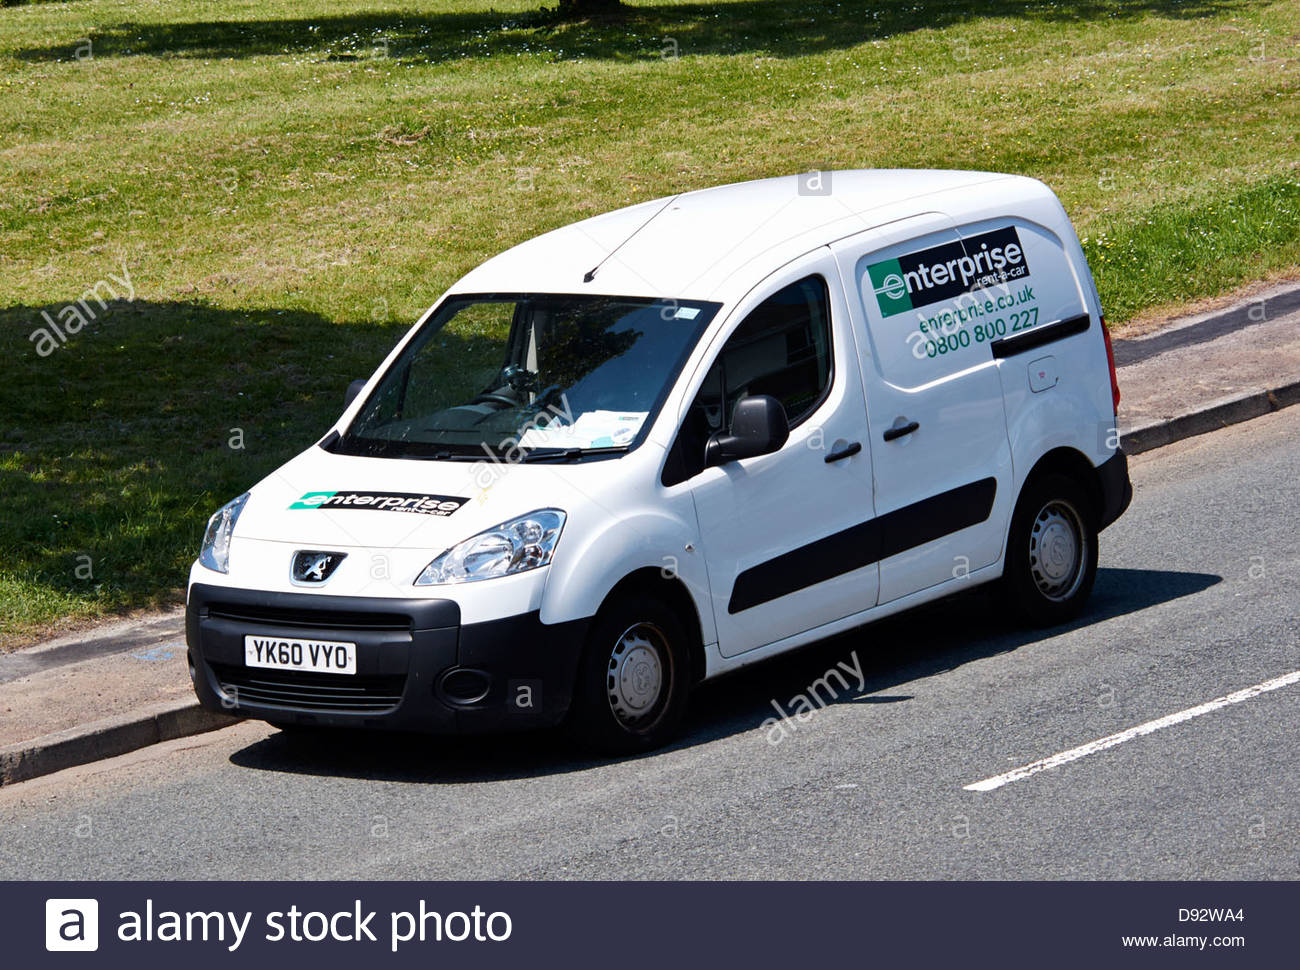 d9d06bc8b2 white peugeot van enterprise rent a car parked on the roadside - Stock Image